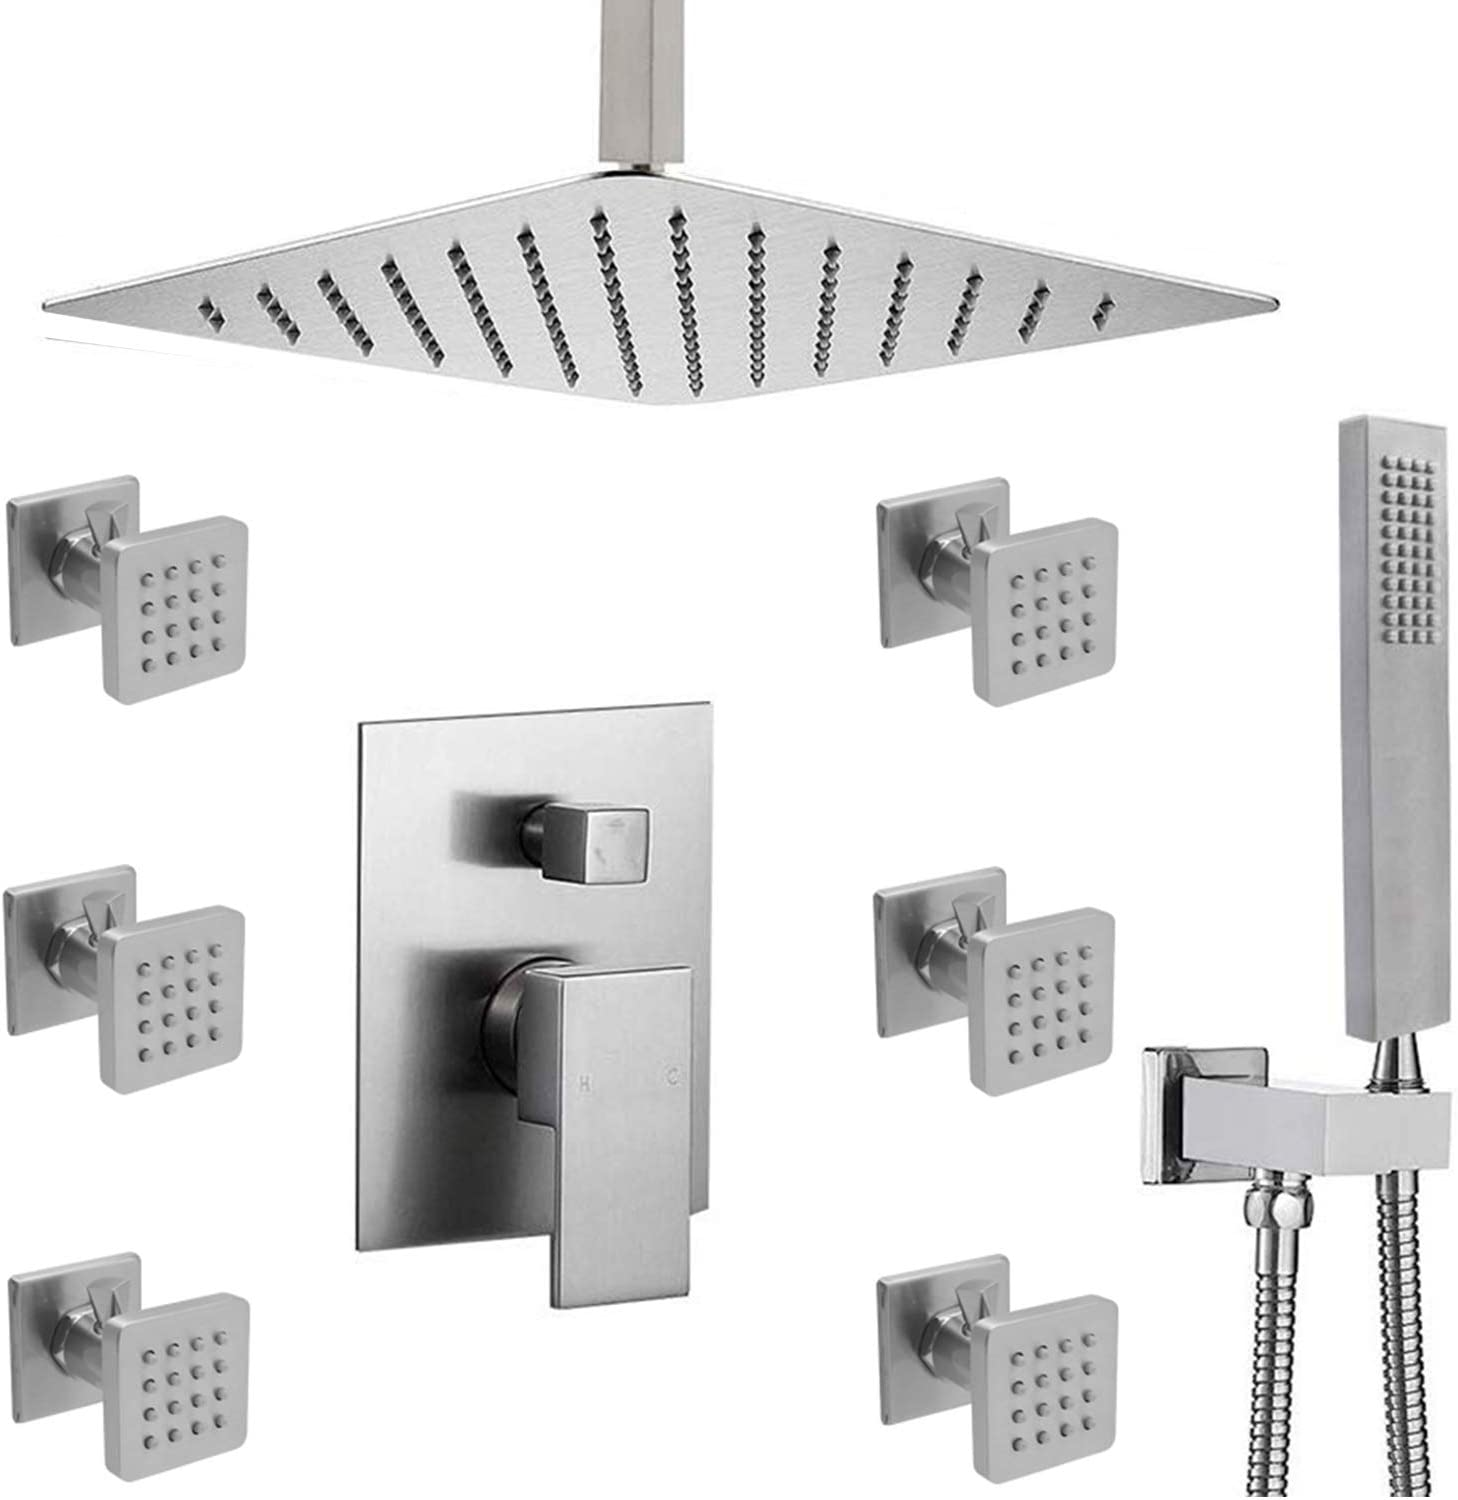 (Upgrade) Enga Luxury High Pressure Shower Body Spray System All Metal with 12inch Rainfall Shower and Hand Held Combo Set Complete Kit for Bathroom, Brushed nickel